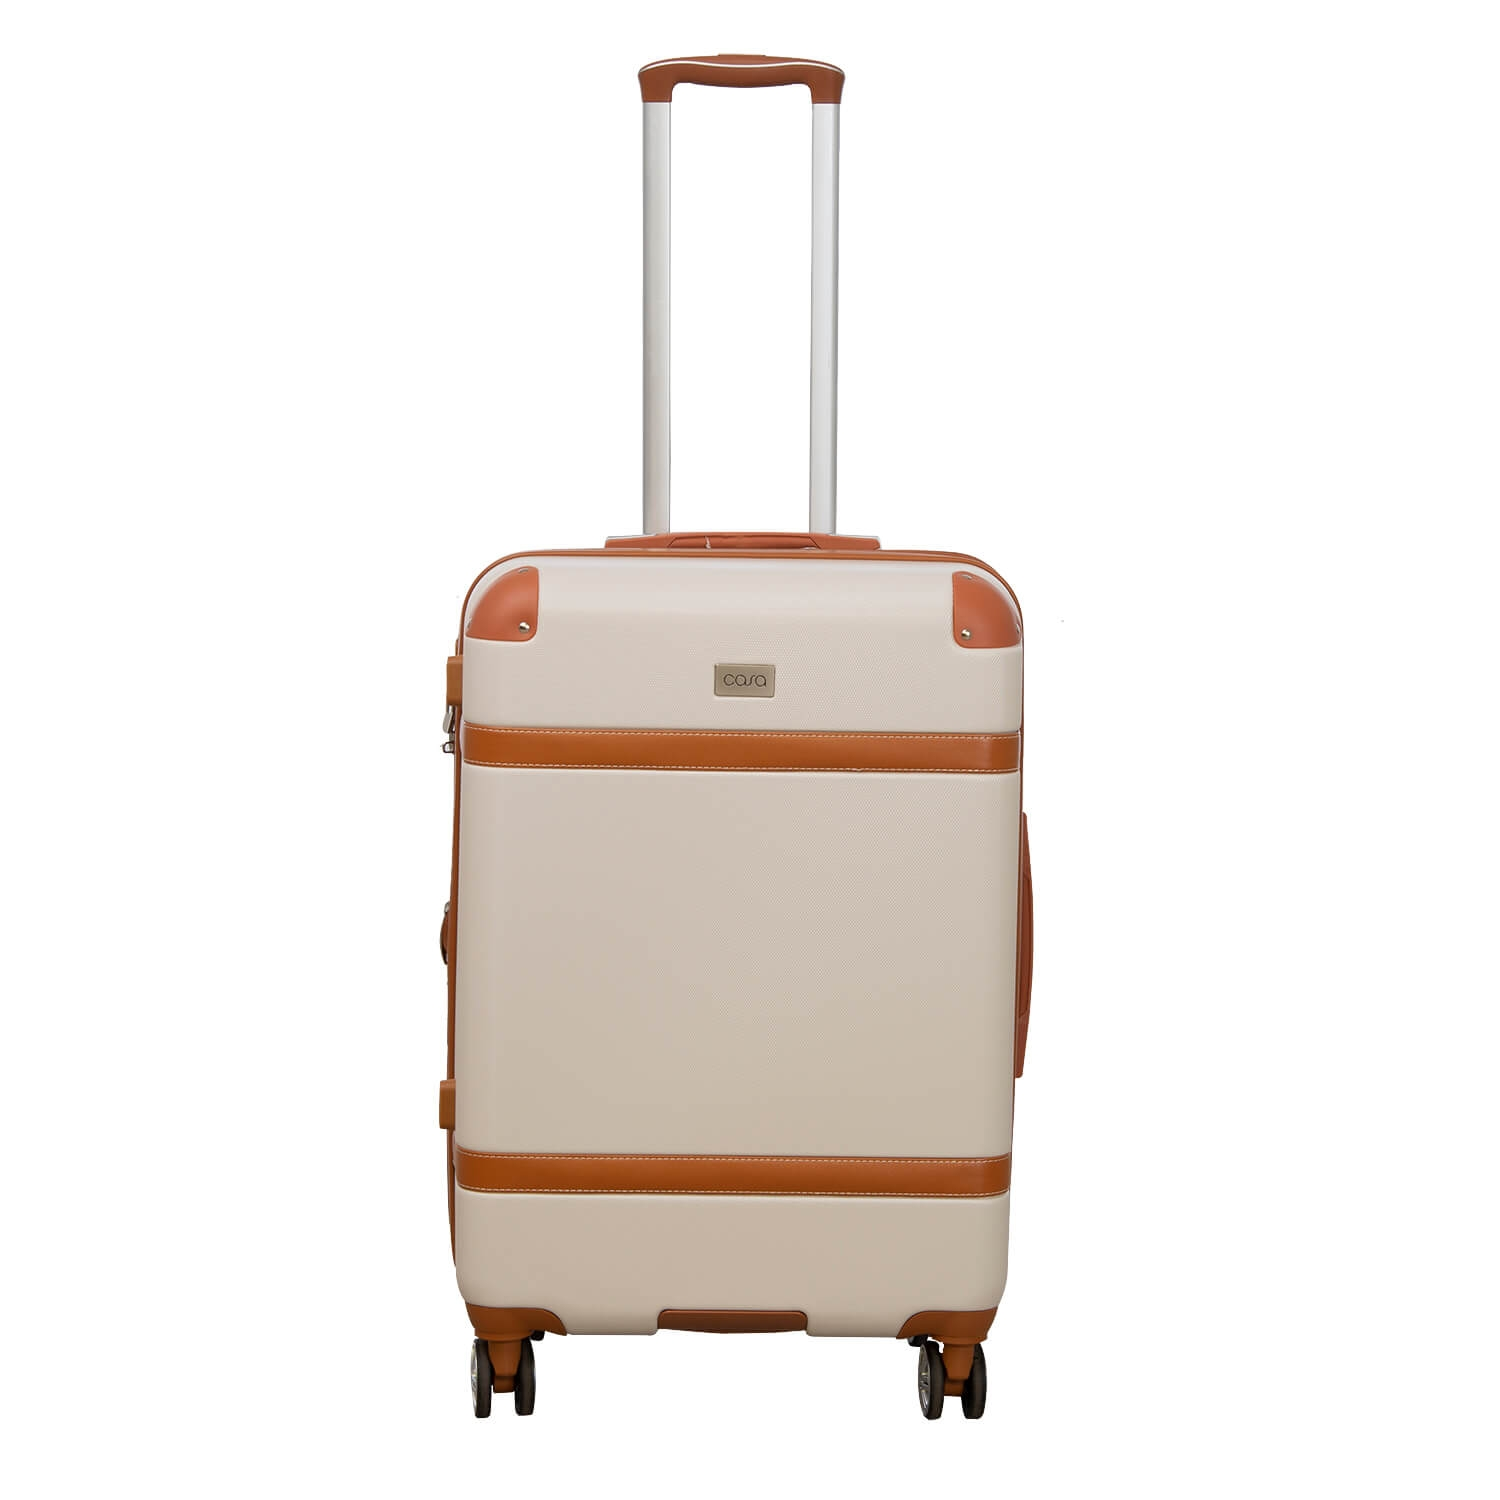 Image of Casa Contrast Banded Hard 40cm x 23cm x 65cm Suitcase, Cream And Tan